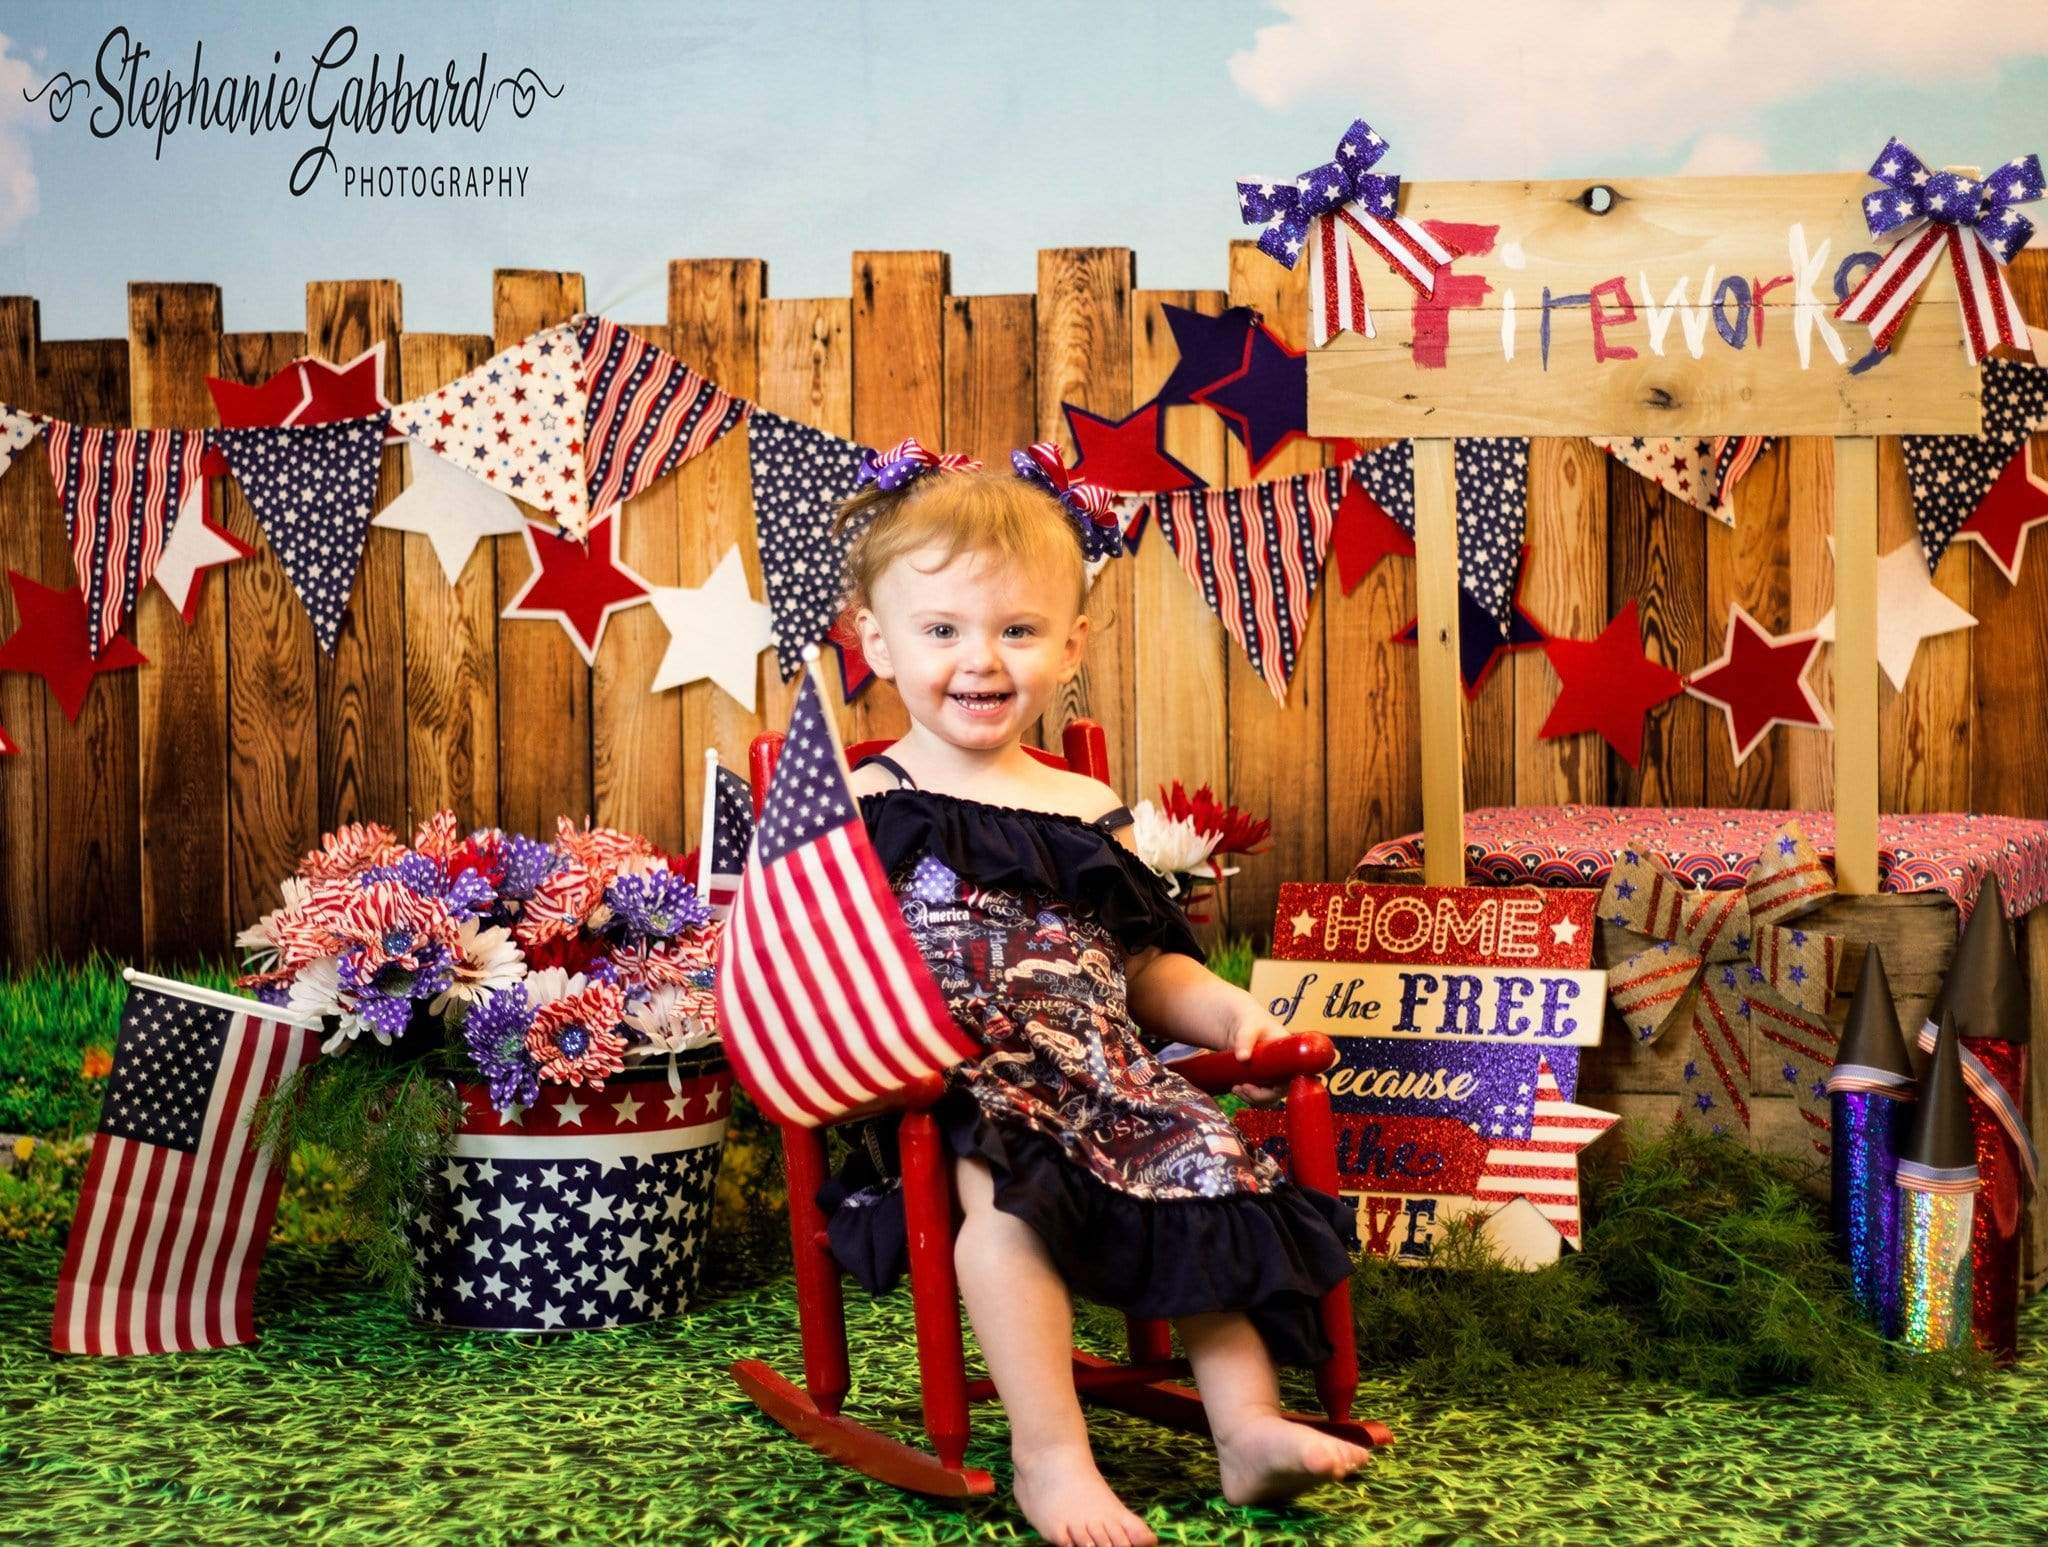 Load image into Gallery viewer, Katebackdrop:Kate American Firework 4th of July Children Backdrop for Photography Designed by Stephanie Gabbard